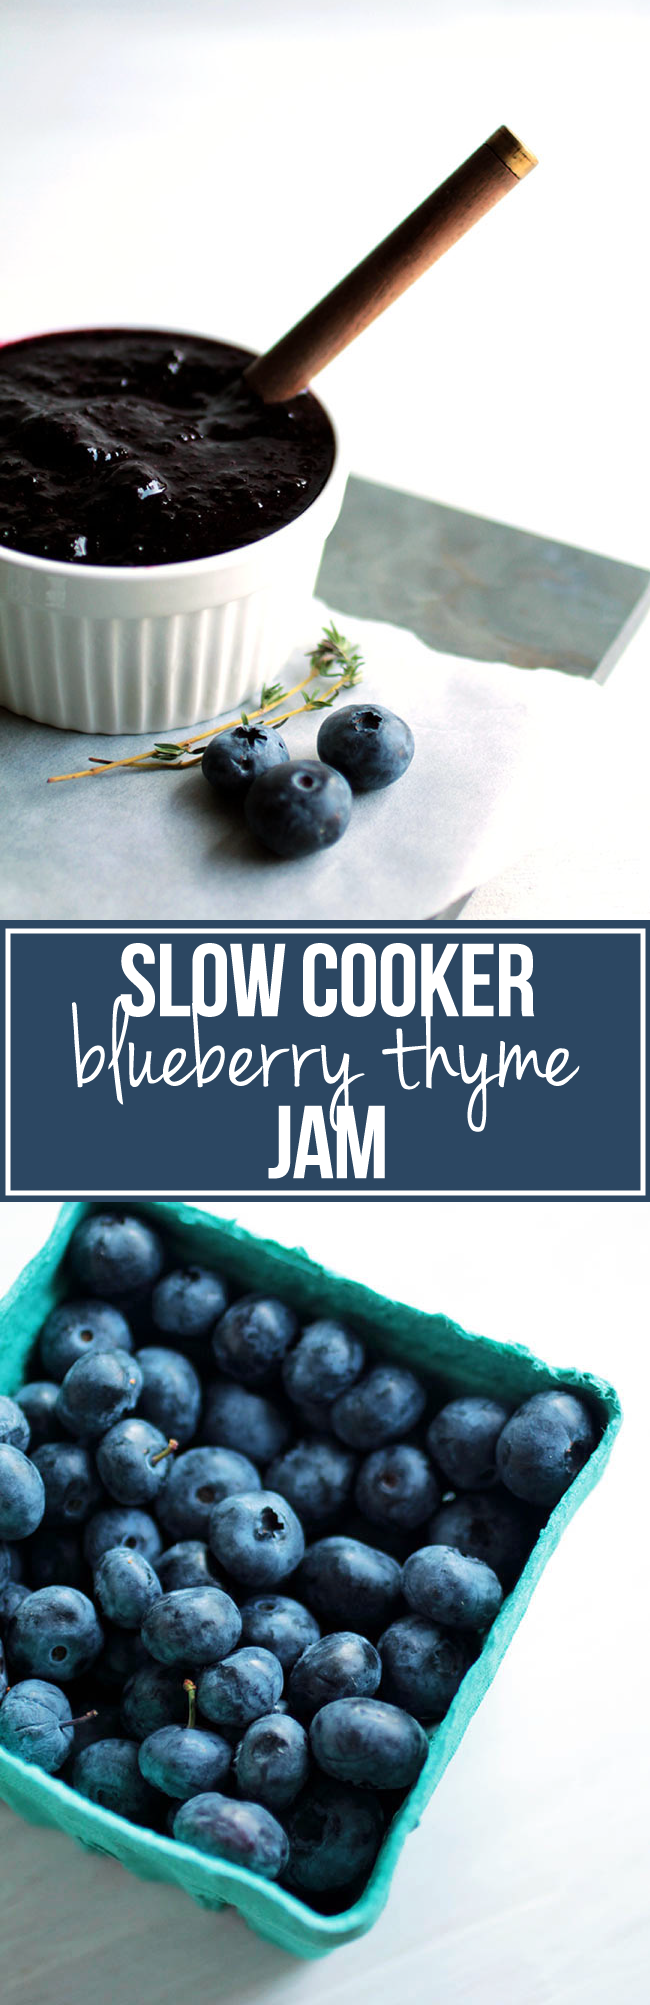 Slow Cooker Blueberry Thyme Jam | This easy homemade blueberry jam gets an earthy twist from a bit of fresh thyme. This crock pot jam is perfect on crostini appetizers, as a topping for fish or chicken, or on your morning toast! Vegetarian, Vegan.